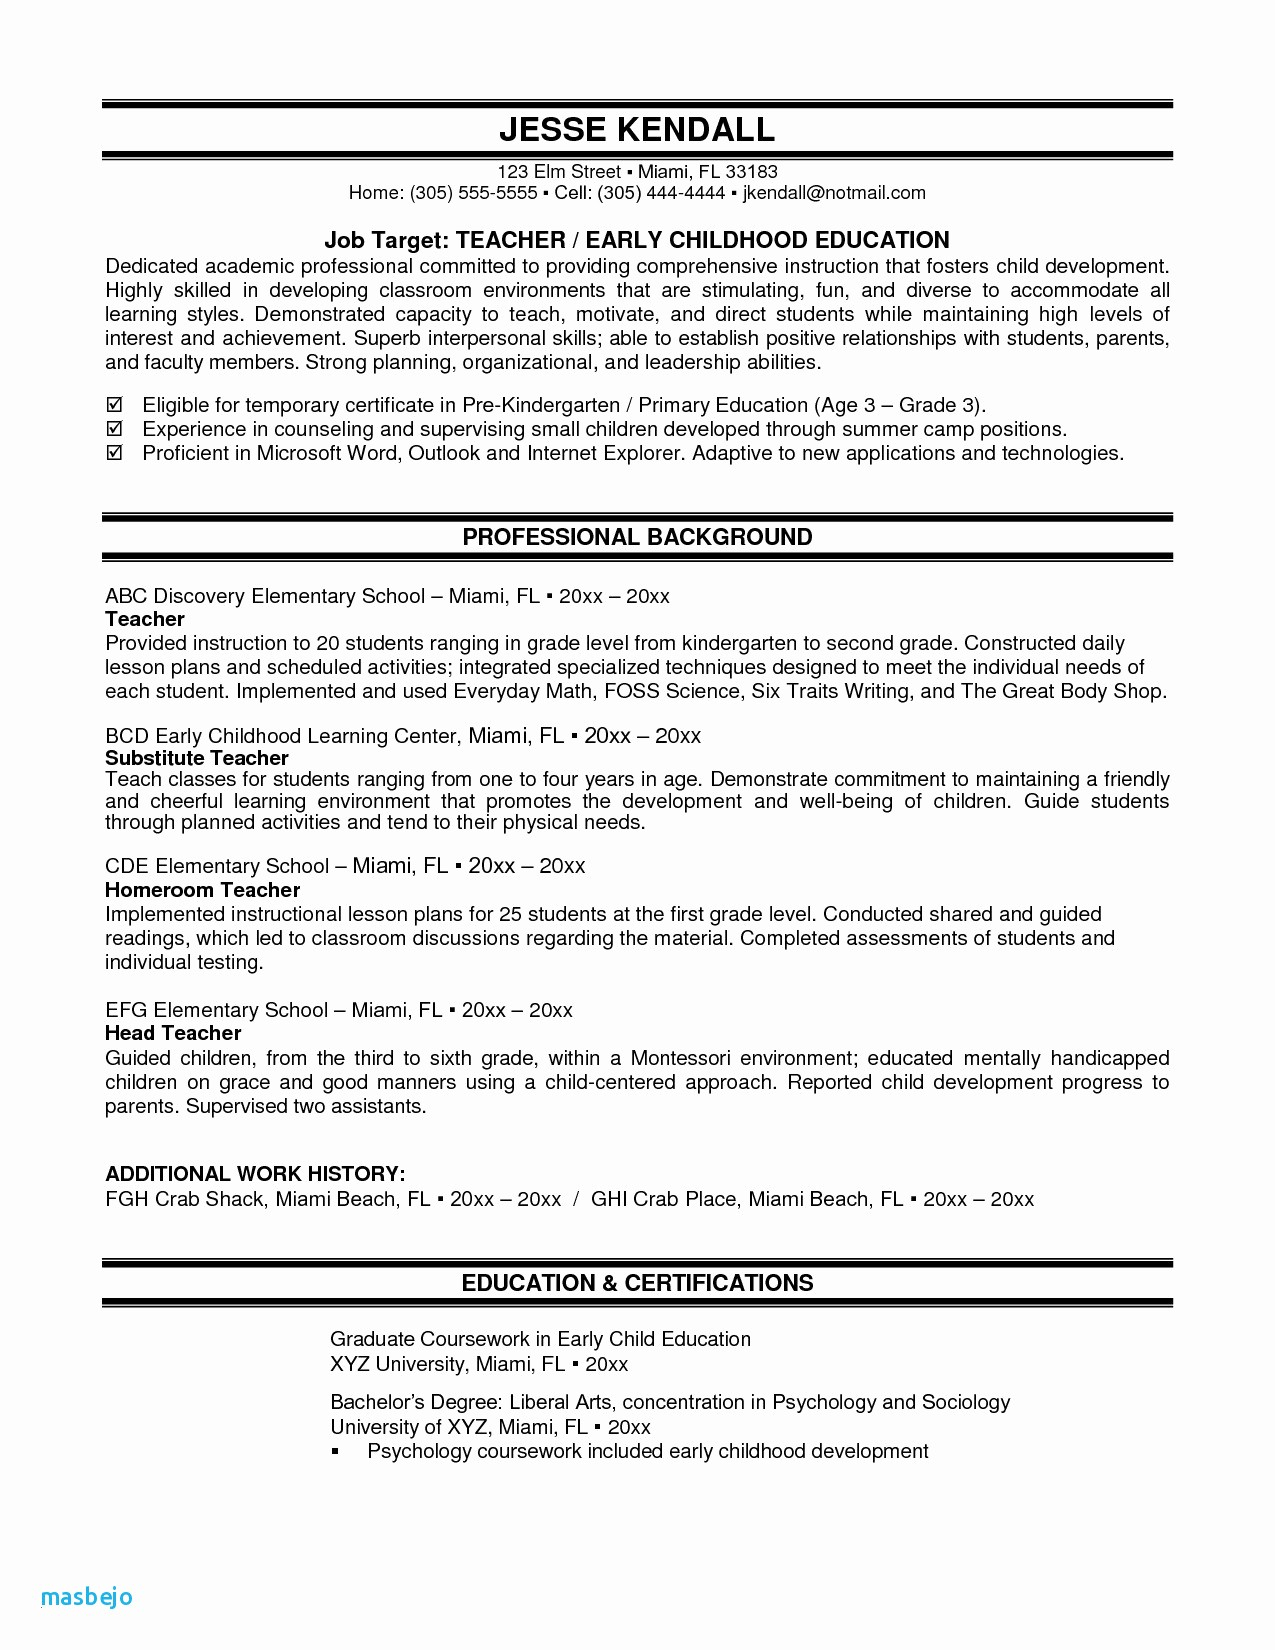 Child Care Provider Resume - 25 New Child Care Resume Examples